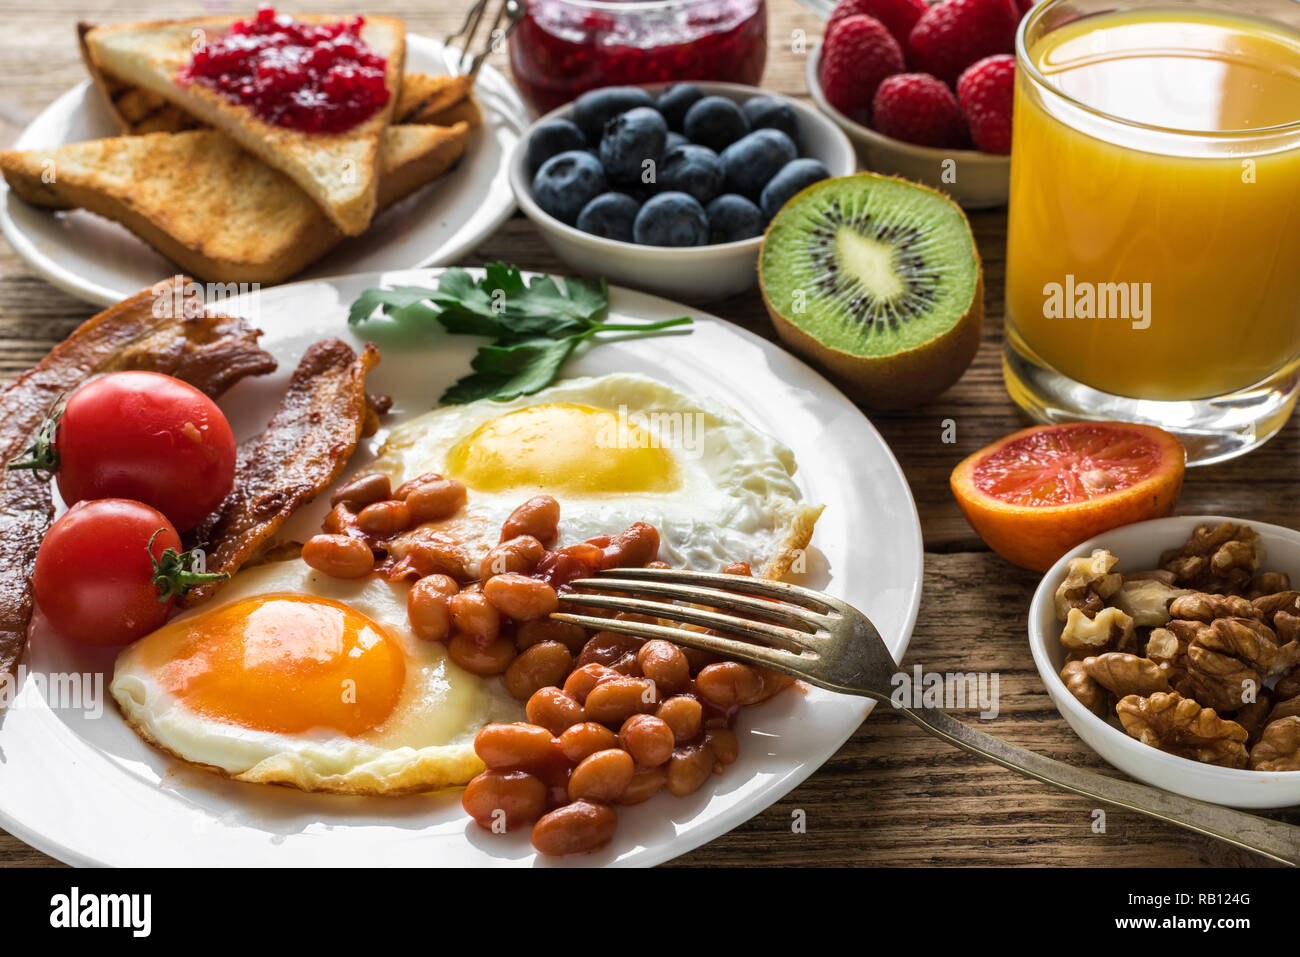 English breakfast served with fried egg, beans, tomatoes, orange juice, bacon and toast with nuts, fresh fruits and berries. close up - Stock Image